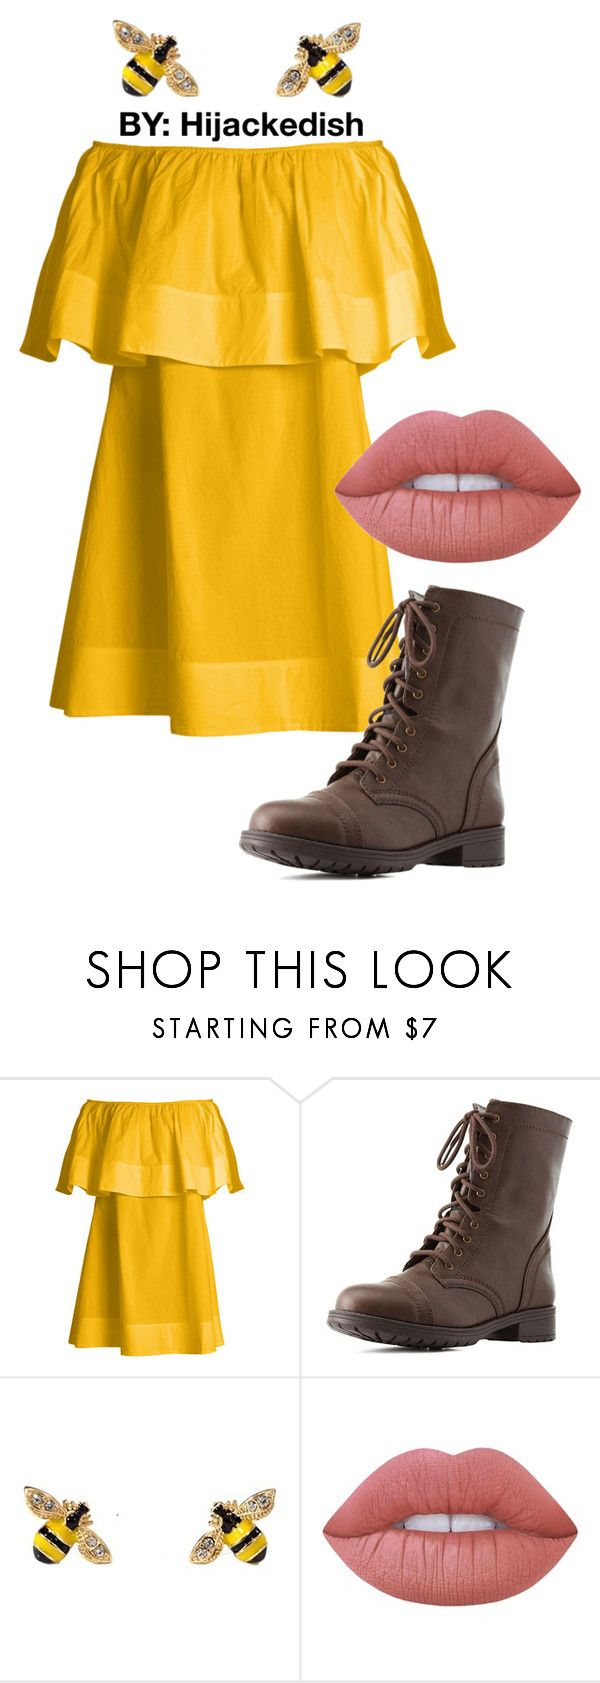 """bumblebee"" by hijackedish on Polyvore featuring Apiece Apart, Charlotte Russe and Lime Crime"